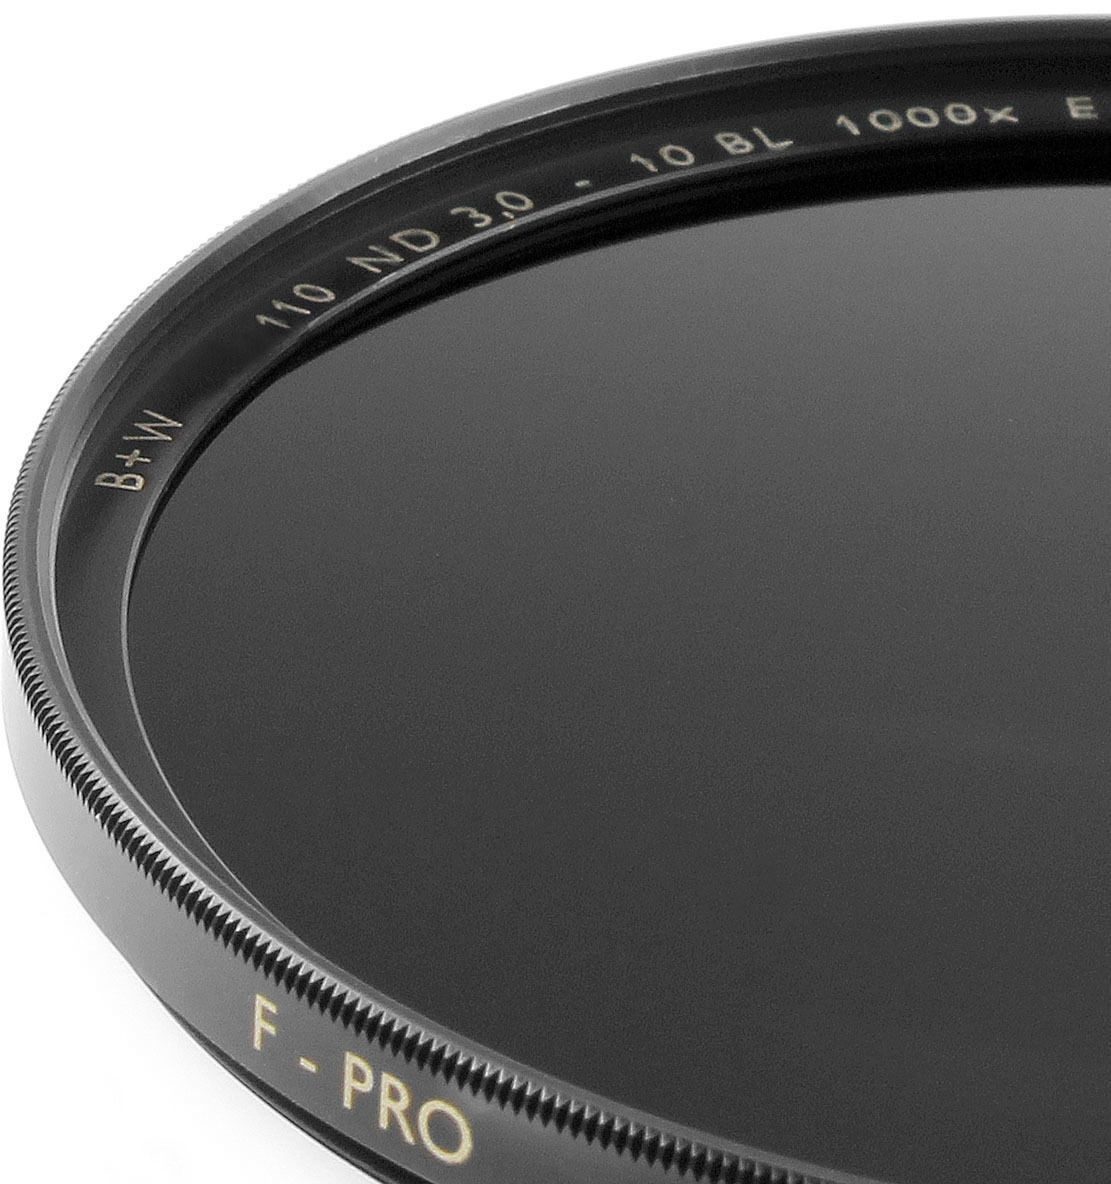 B+W 62 mm 3.0 ND 110 F-pro Neutral Density ND1000x SC Single Coated Filter